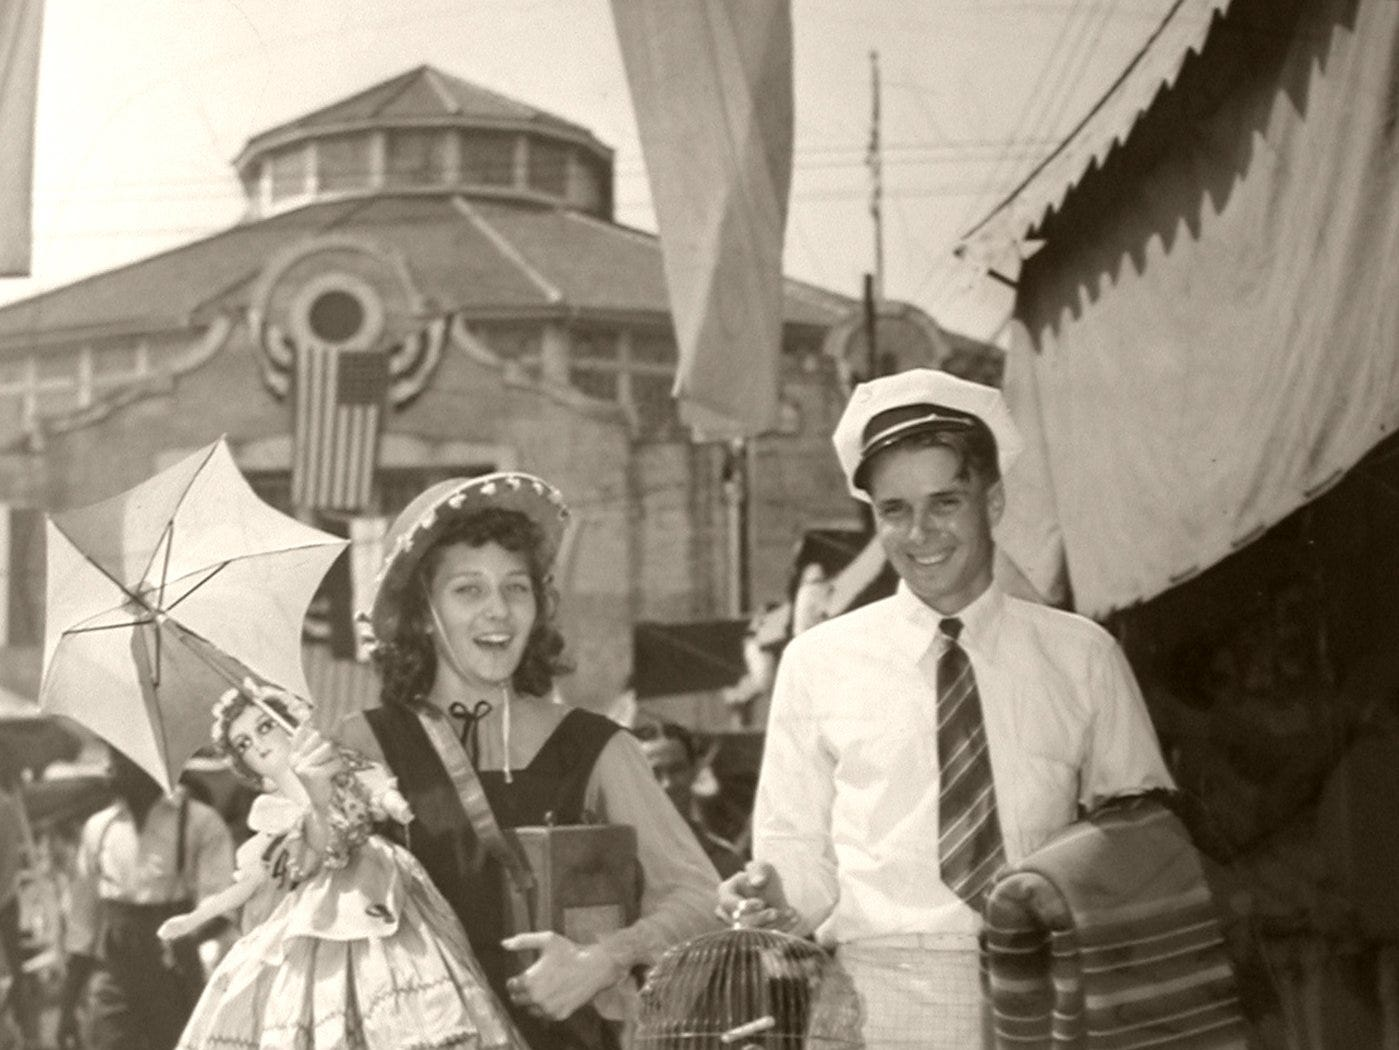 Waltrude Tichenor of Hartford, Ky., and Bob Russell of Utica, Ky., walked along the Kentucky State Fair Midway in 1939, toting a host of prizes they won at the booths.